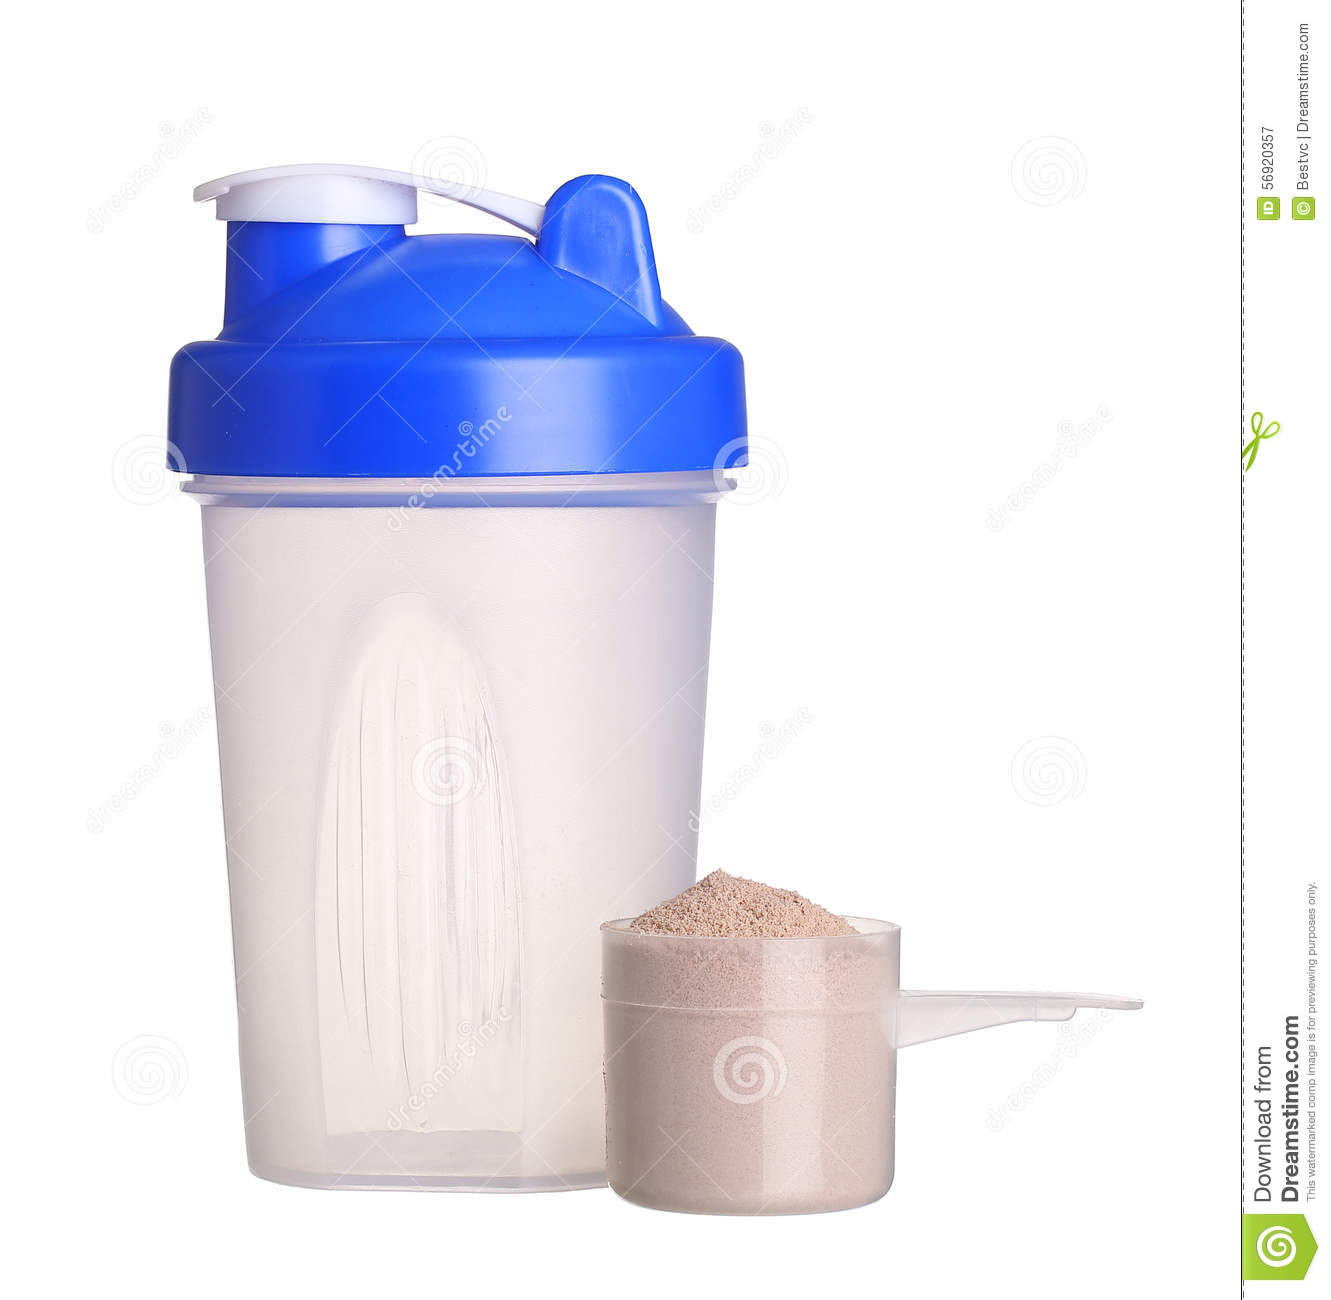 Protein Shaker Net: Shaker And Cup Of Protein Powder Isolated On White Stock